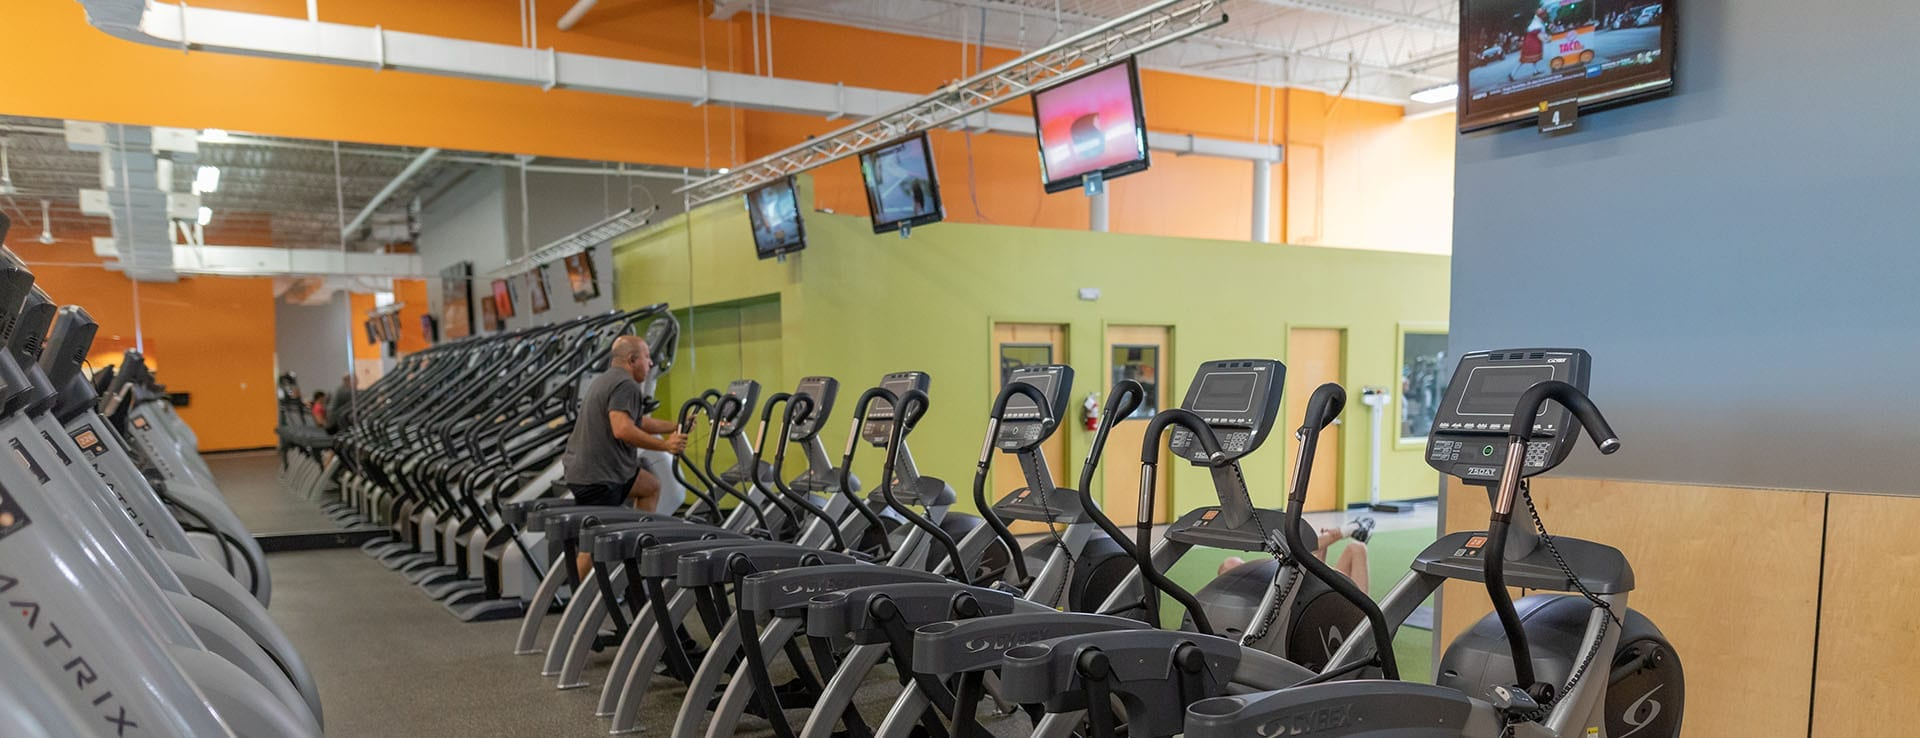 cardio equipment floor with tv monitors at modern gym